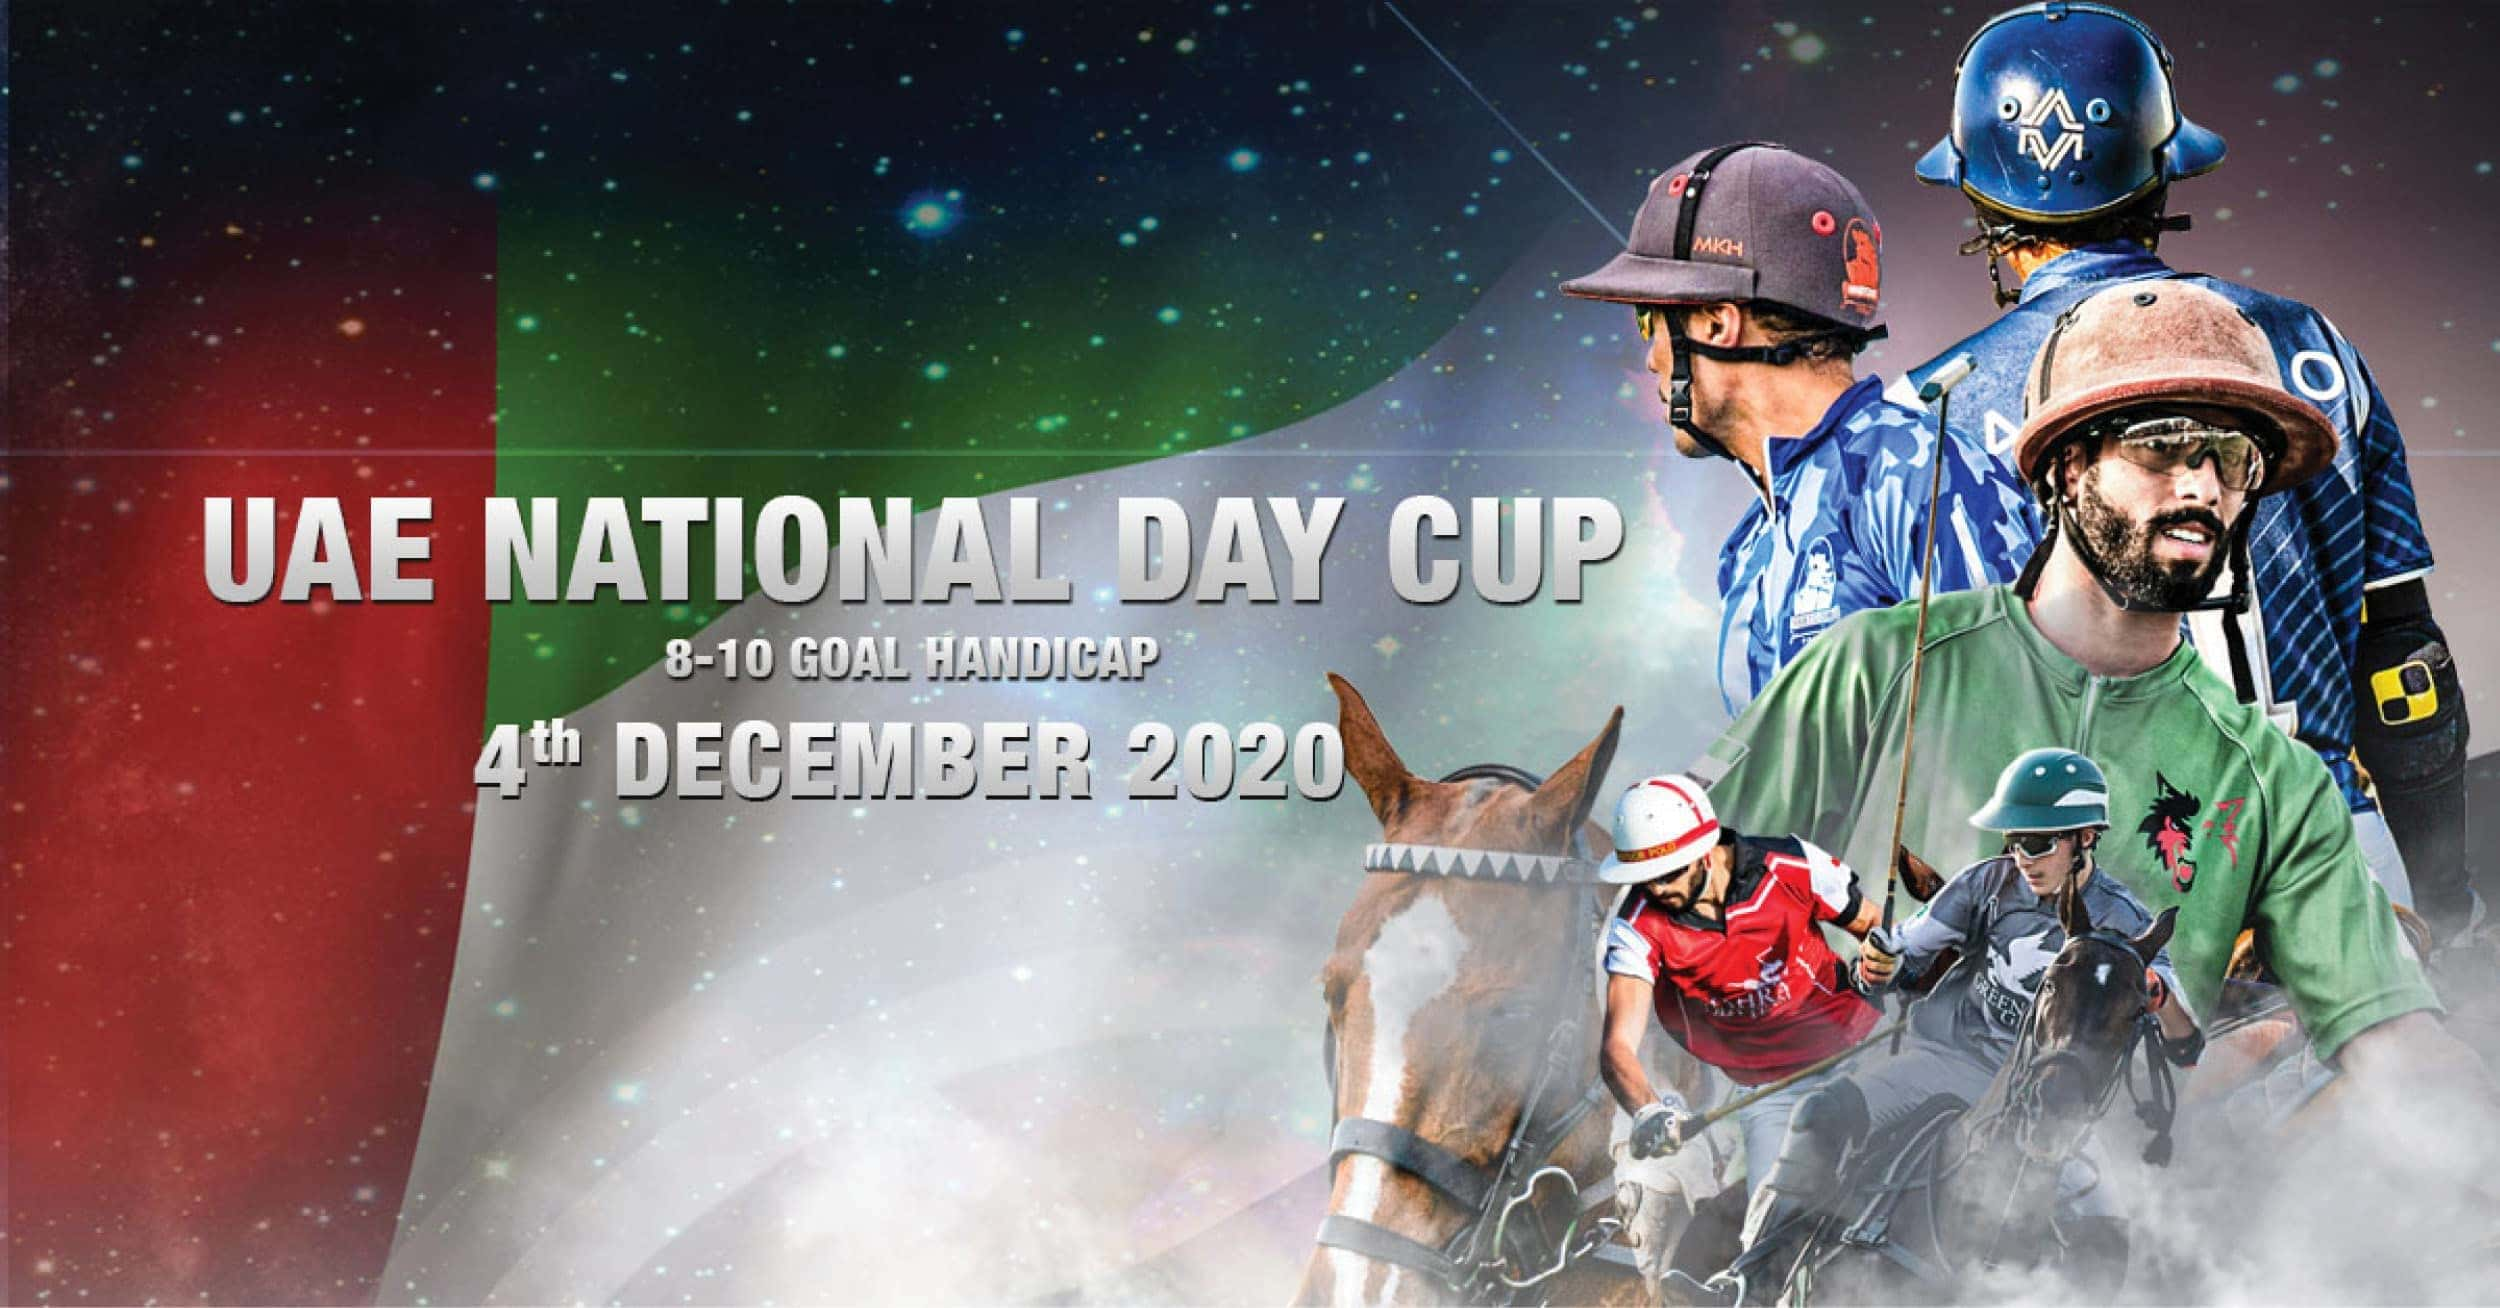 UAE National Day Cup 2020